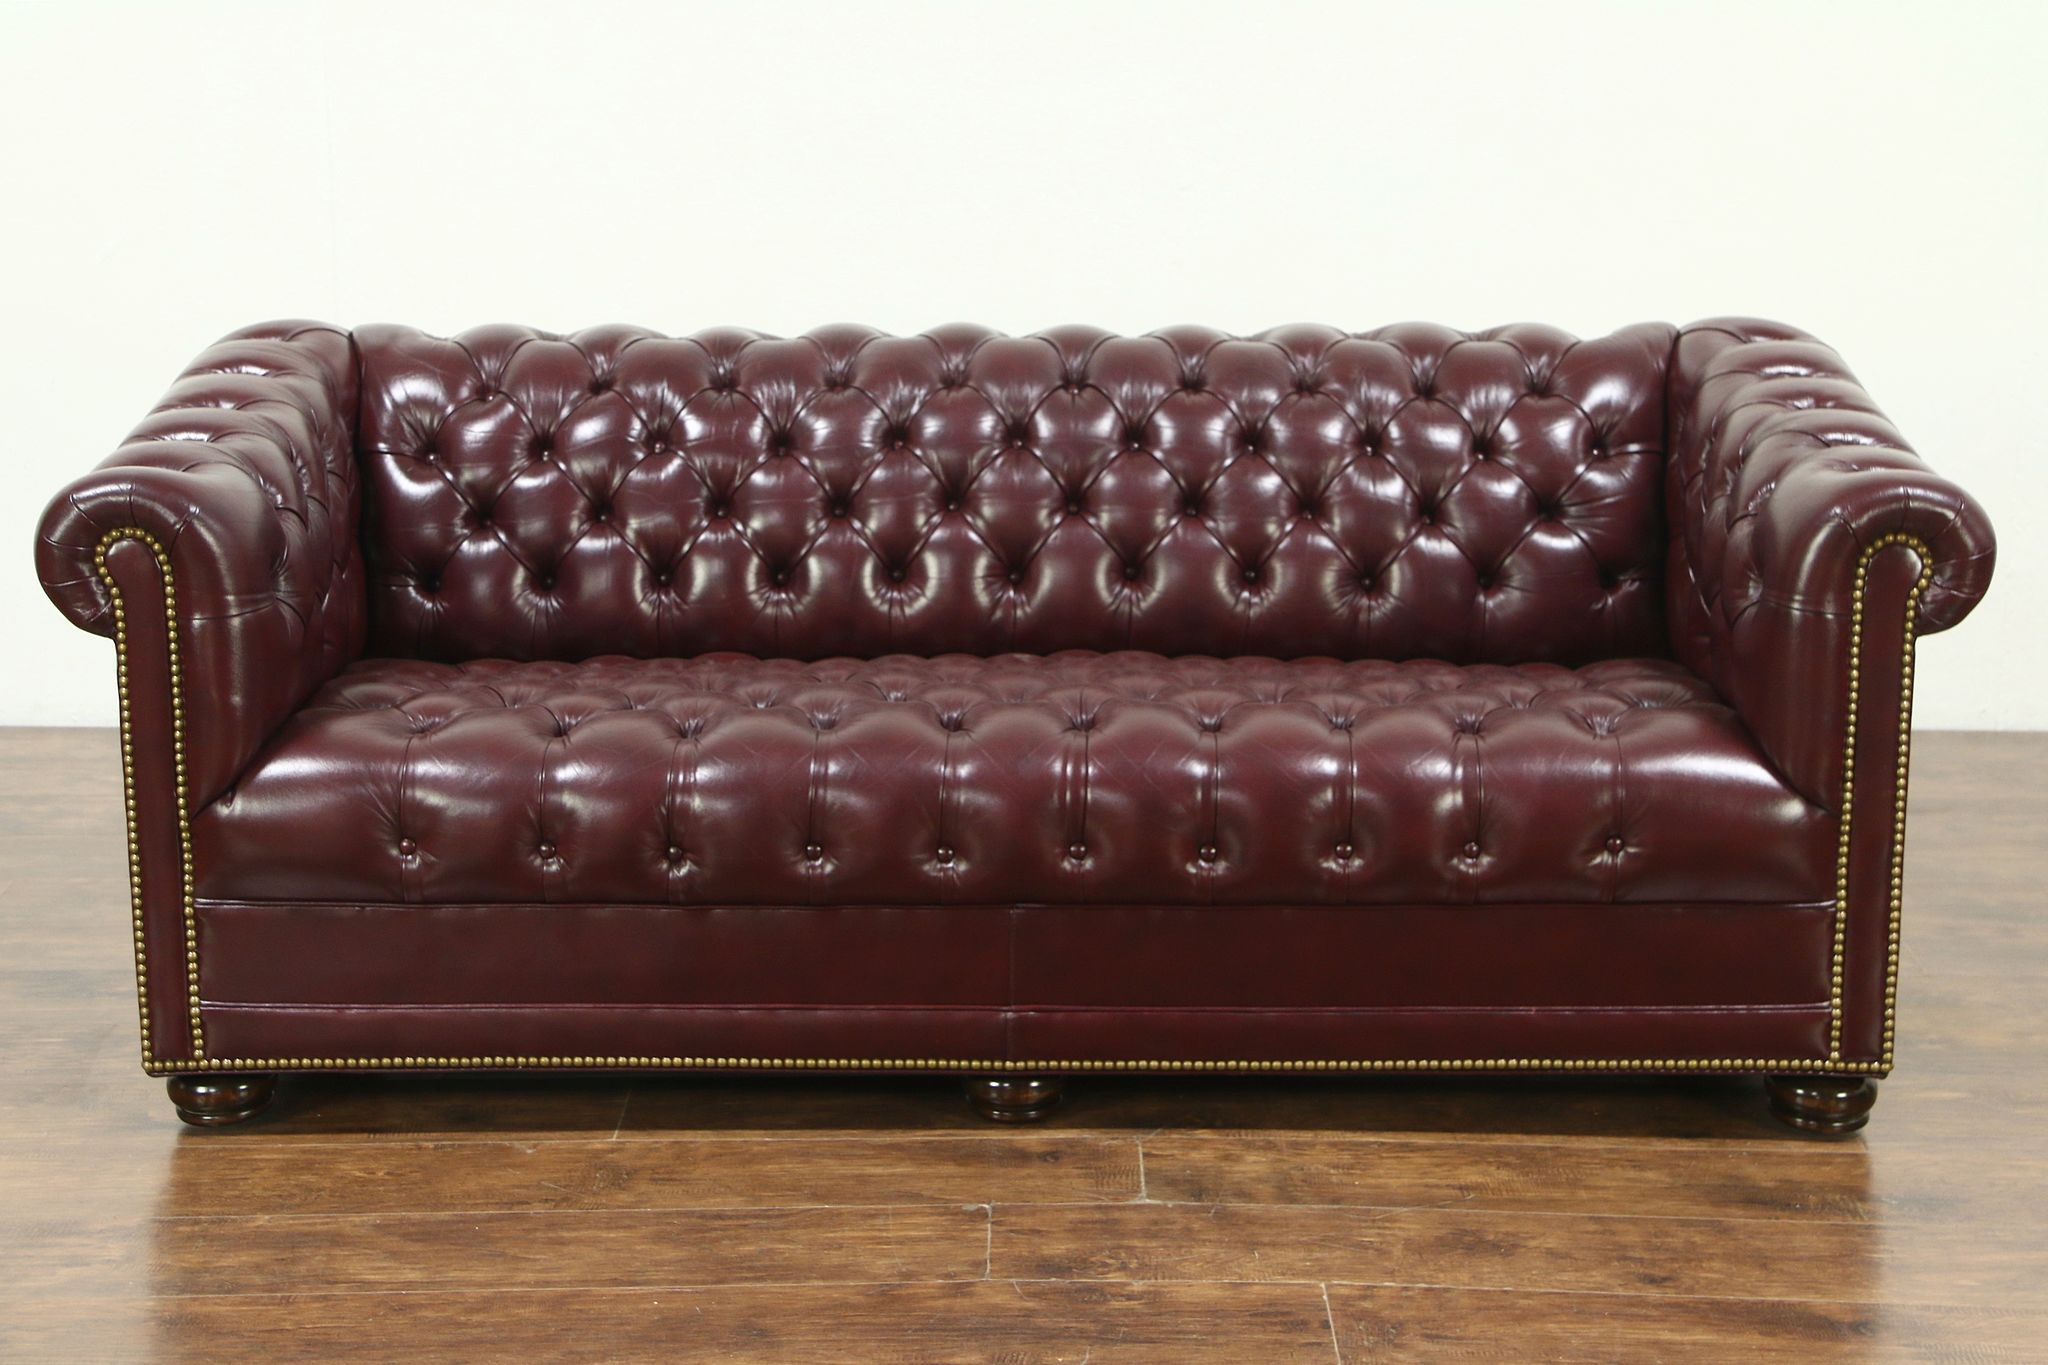 Sold Chesterfield Tufted Leather Vintage Sofa Signed Hancock